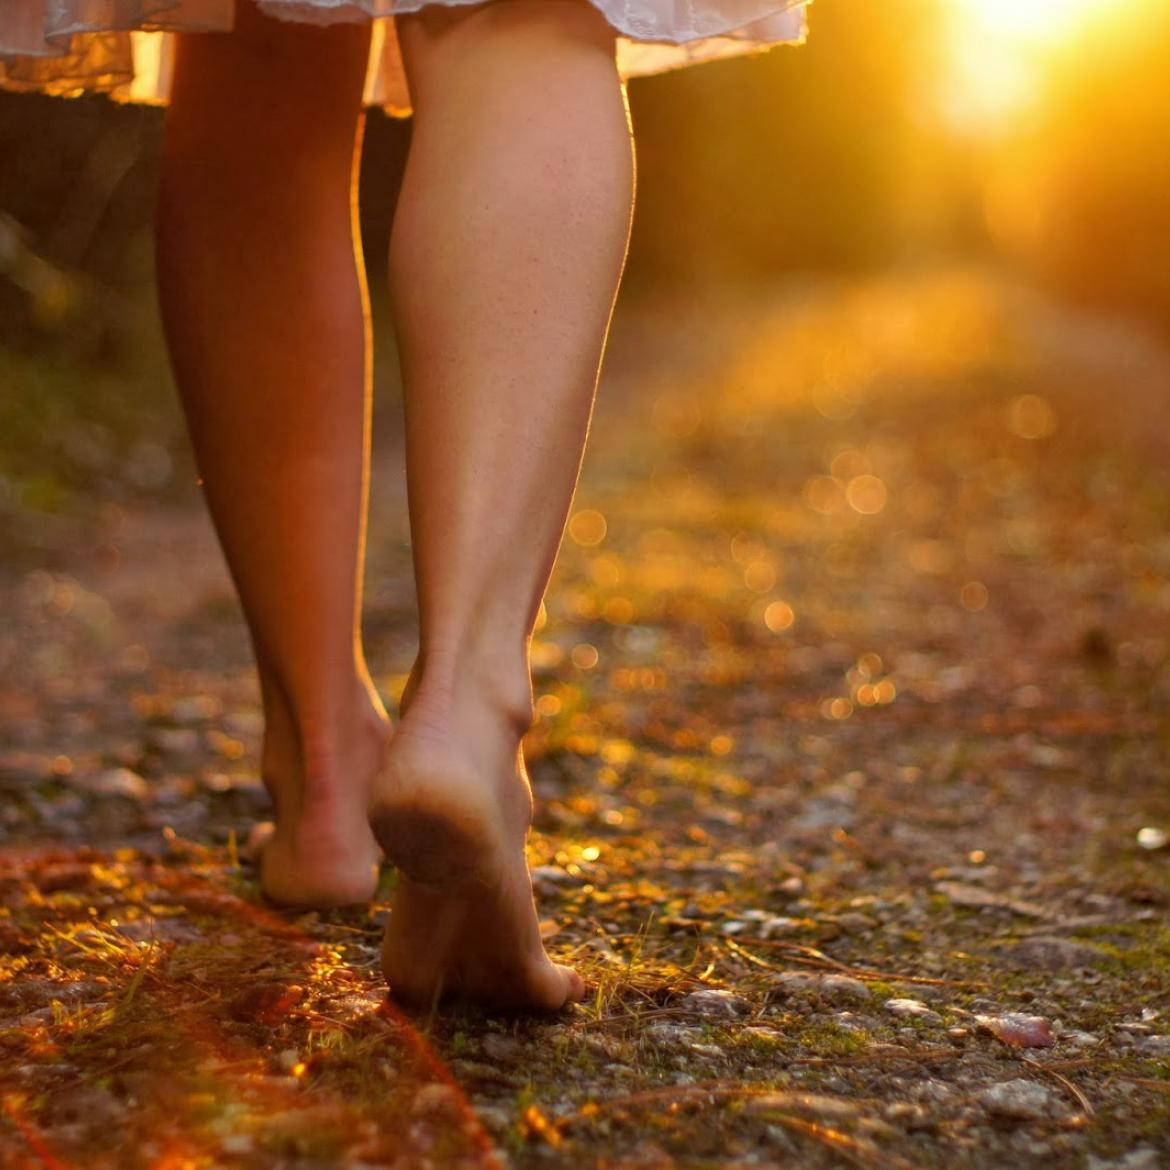 http://www.4newsmagazine.com.br/sites/default/files/barefoot-walking-credit-gerneinde-celerina.jpg